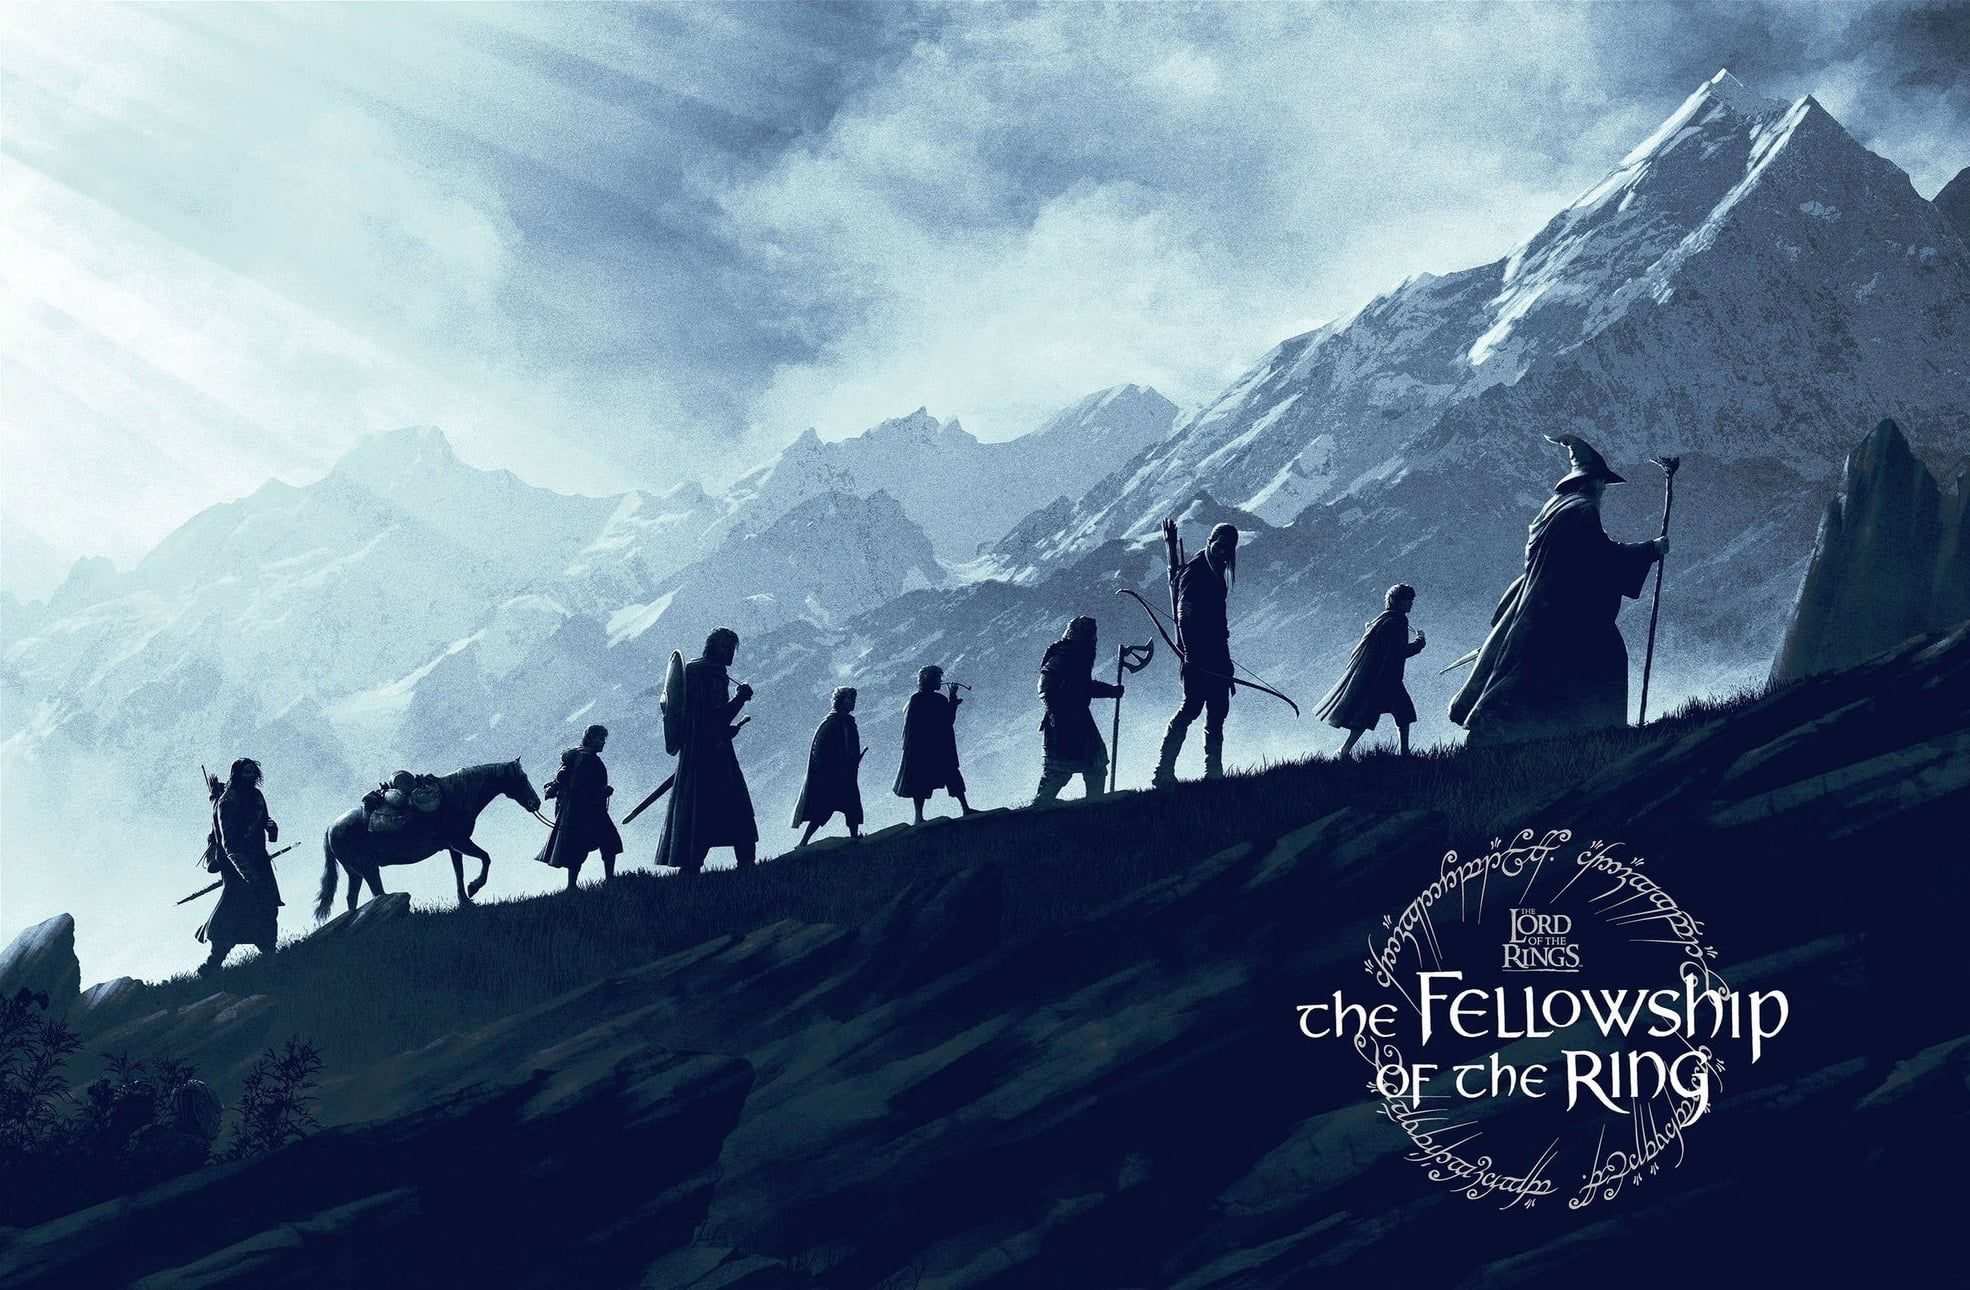 Movies Fantasy Art The Lord Of The Rings The Fellowship Of The Ring Artwork Mountains 20 Fellowship Of The Ring Lord Of The Rings Tattoo Lord Of The Rings